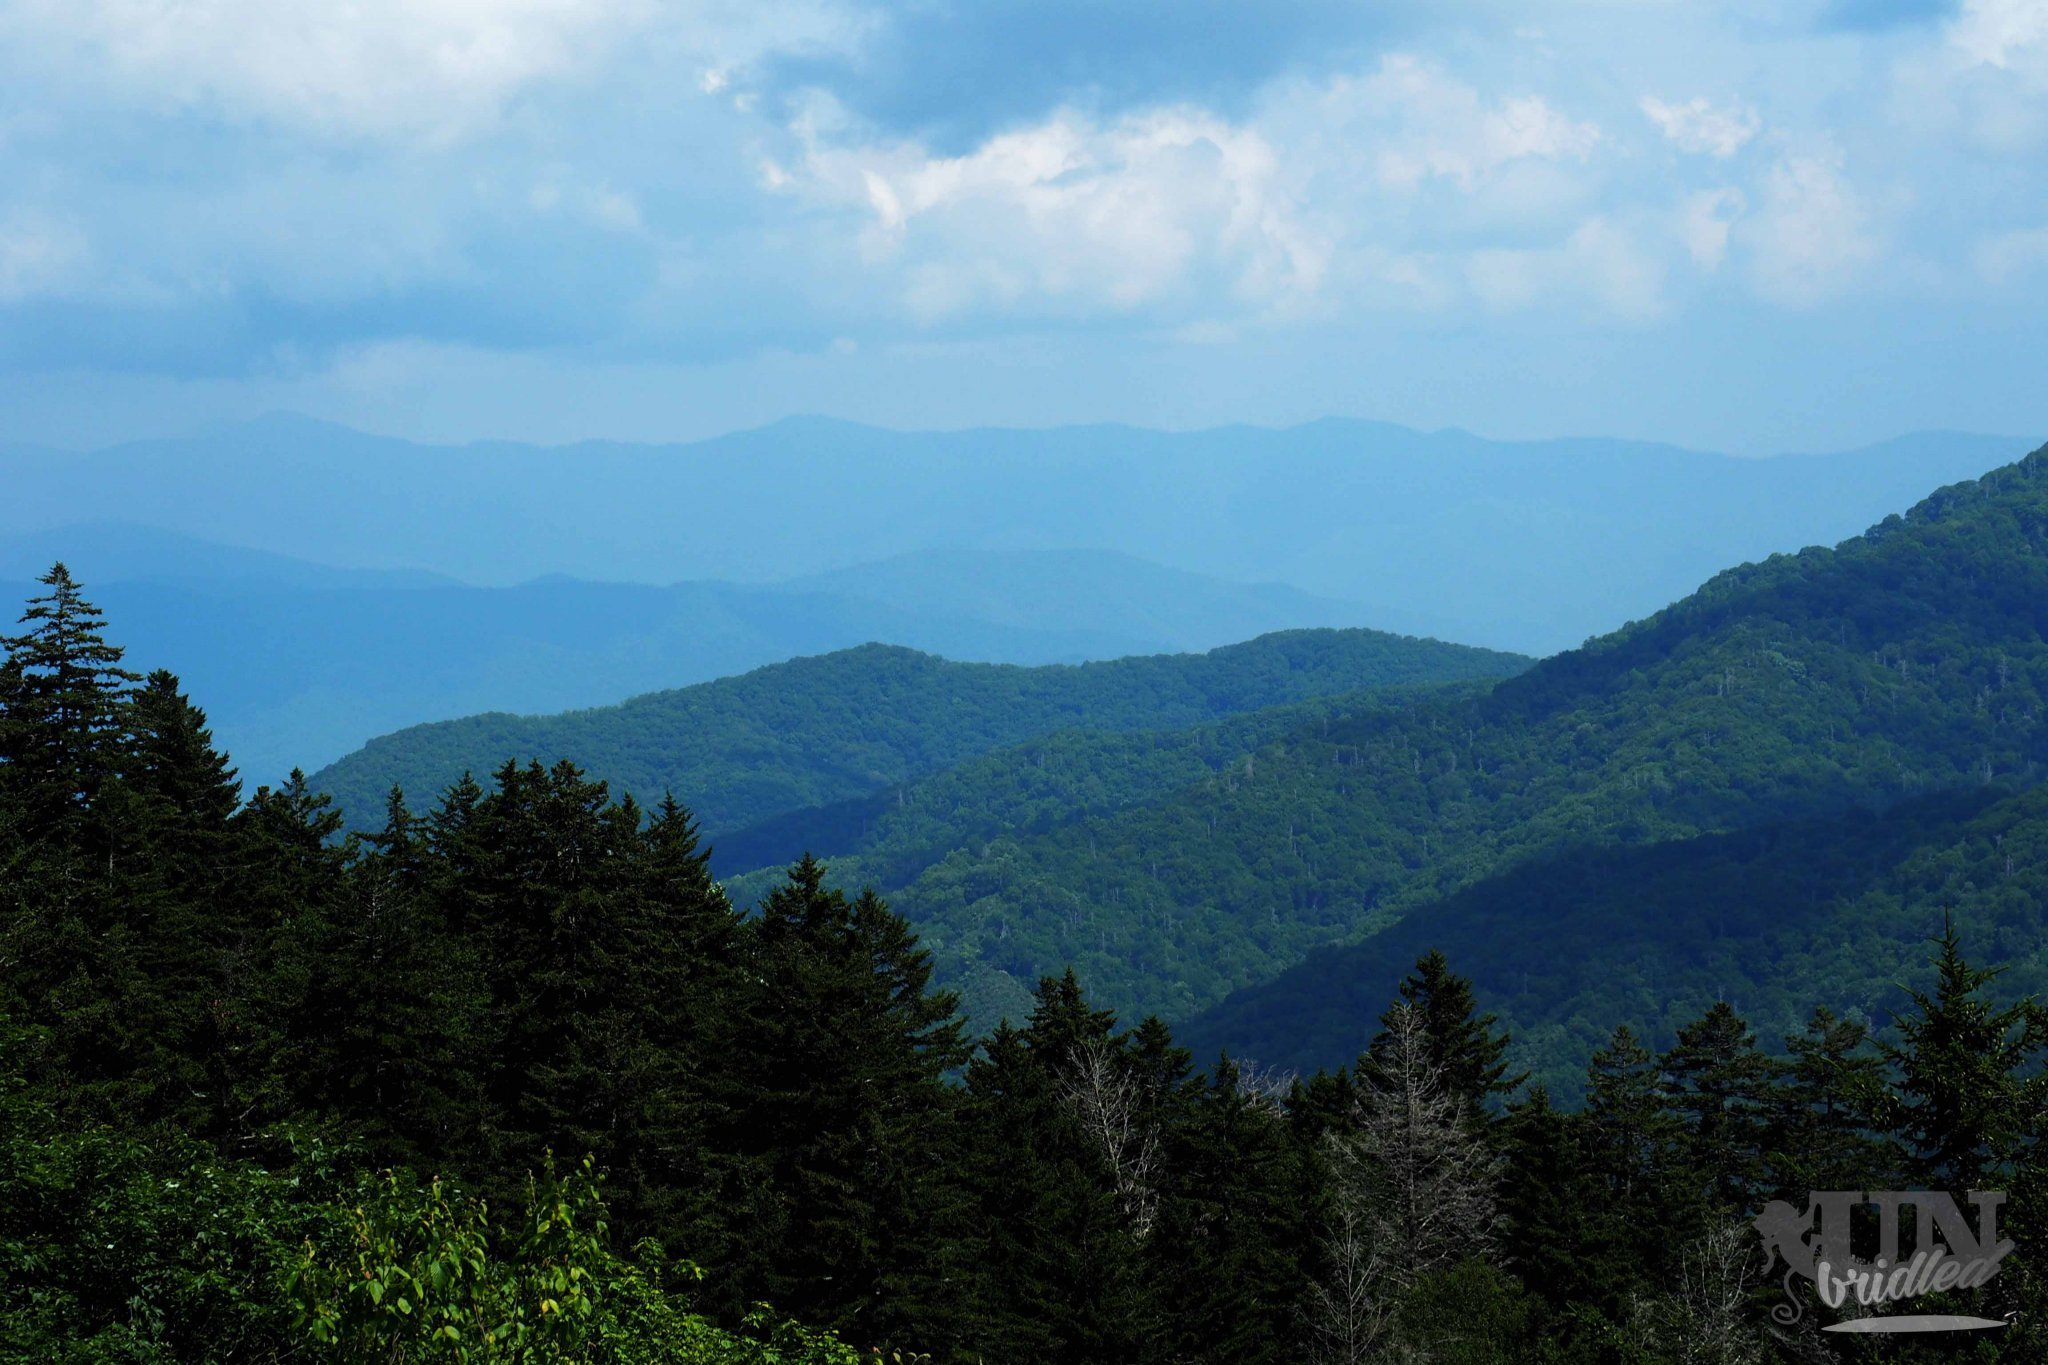 The smoky mountains national park: The mountains in the front are good visible, the mountains in the back are just blue shapes